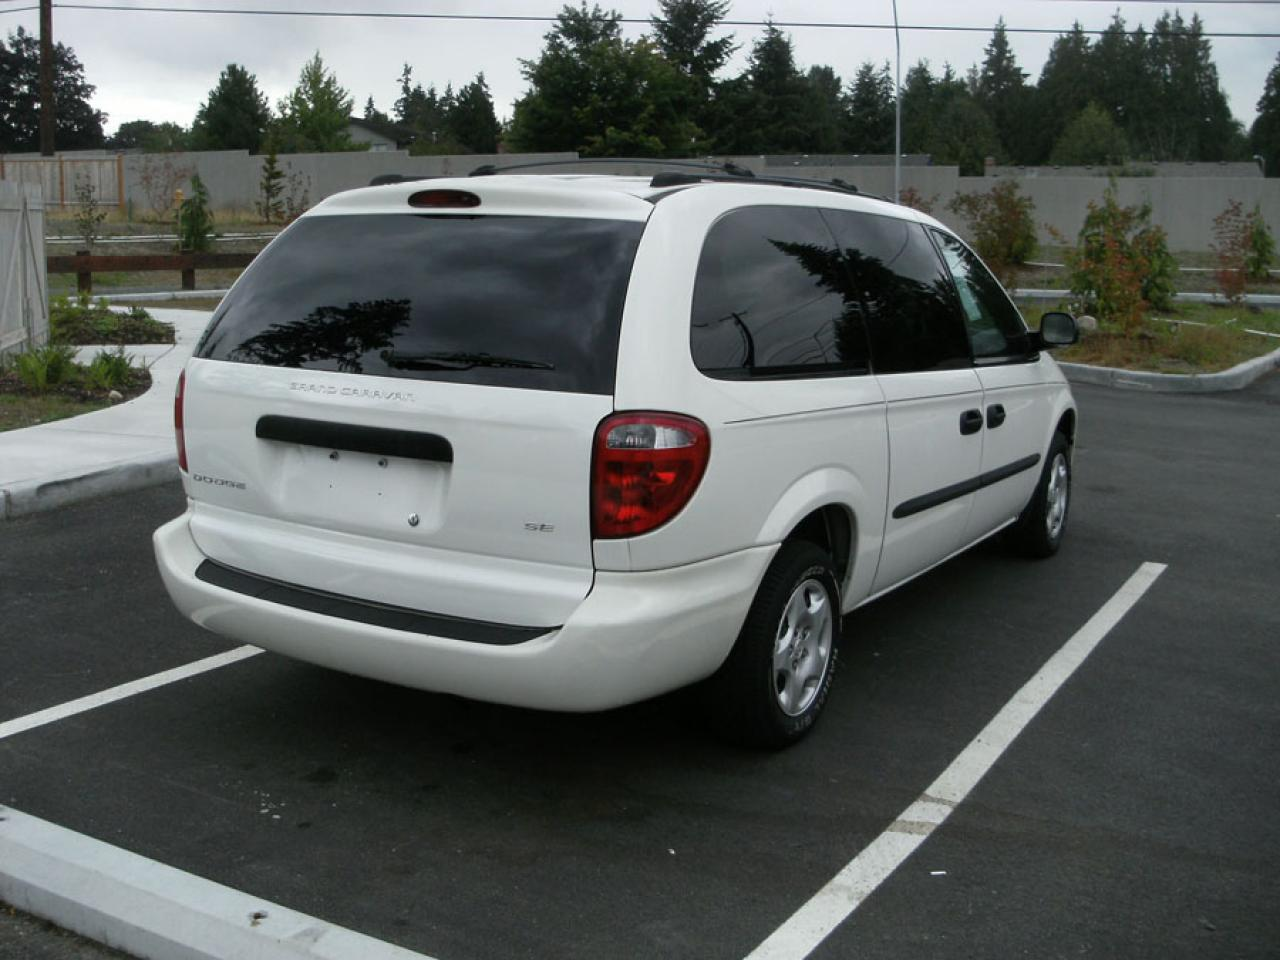 2003 Dodge Grand Caravan Information And Photos Zombiedrive 2 800 1024 1280 1600